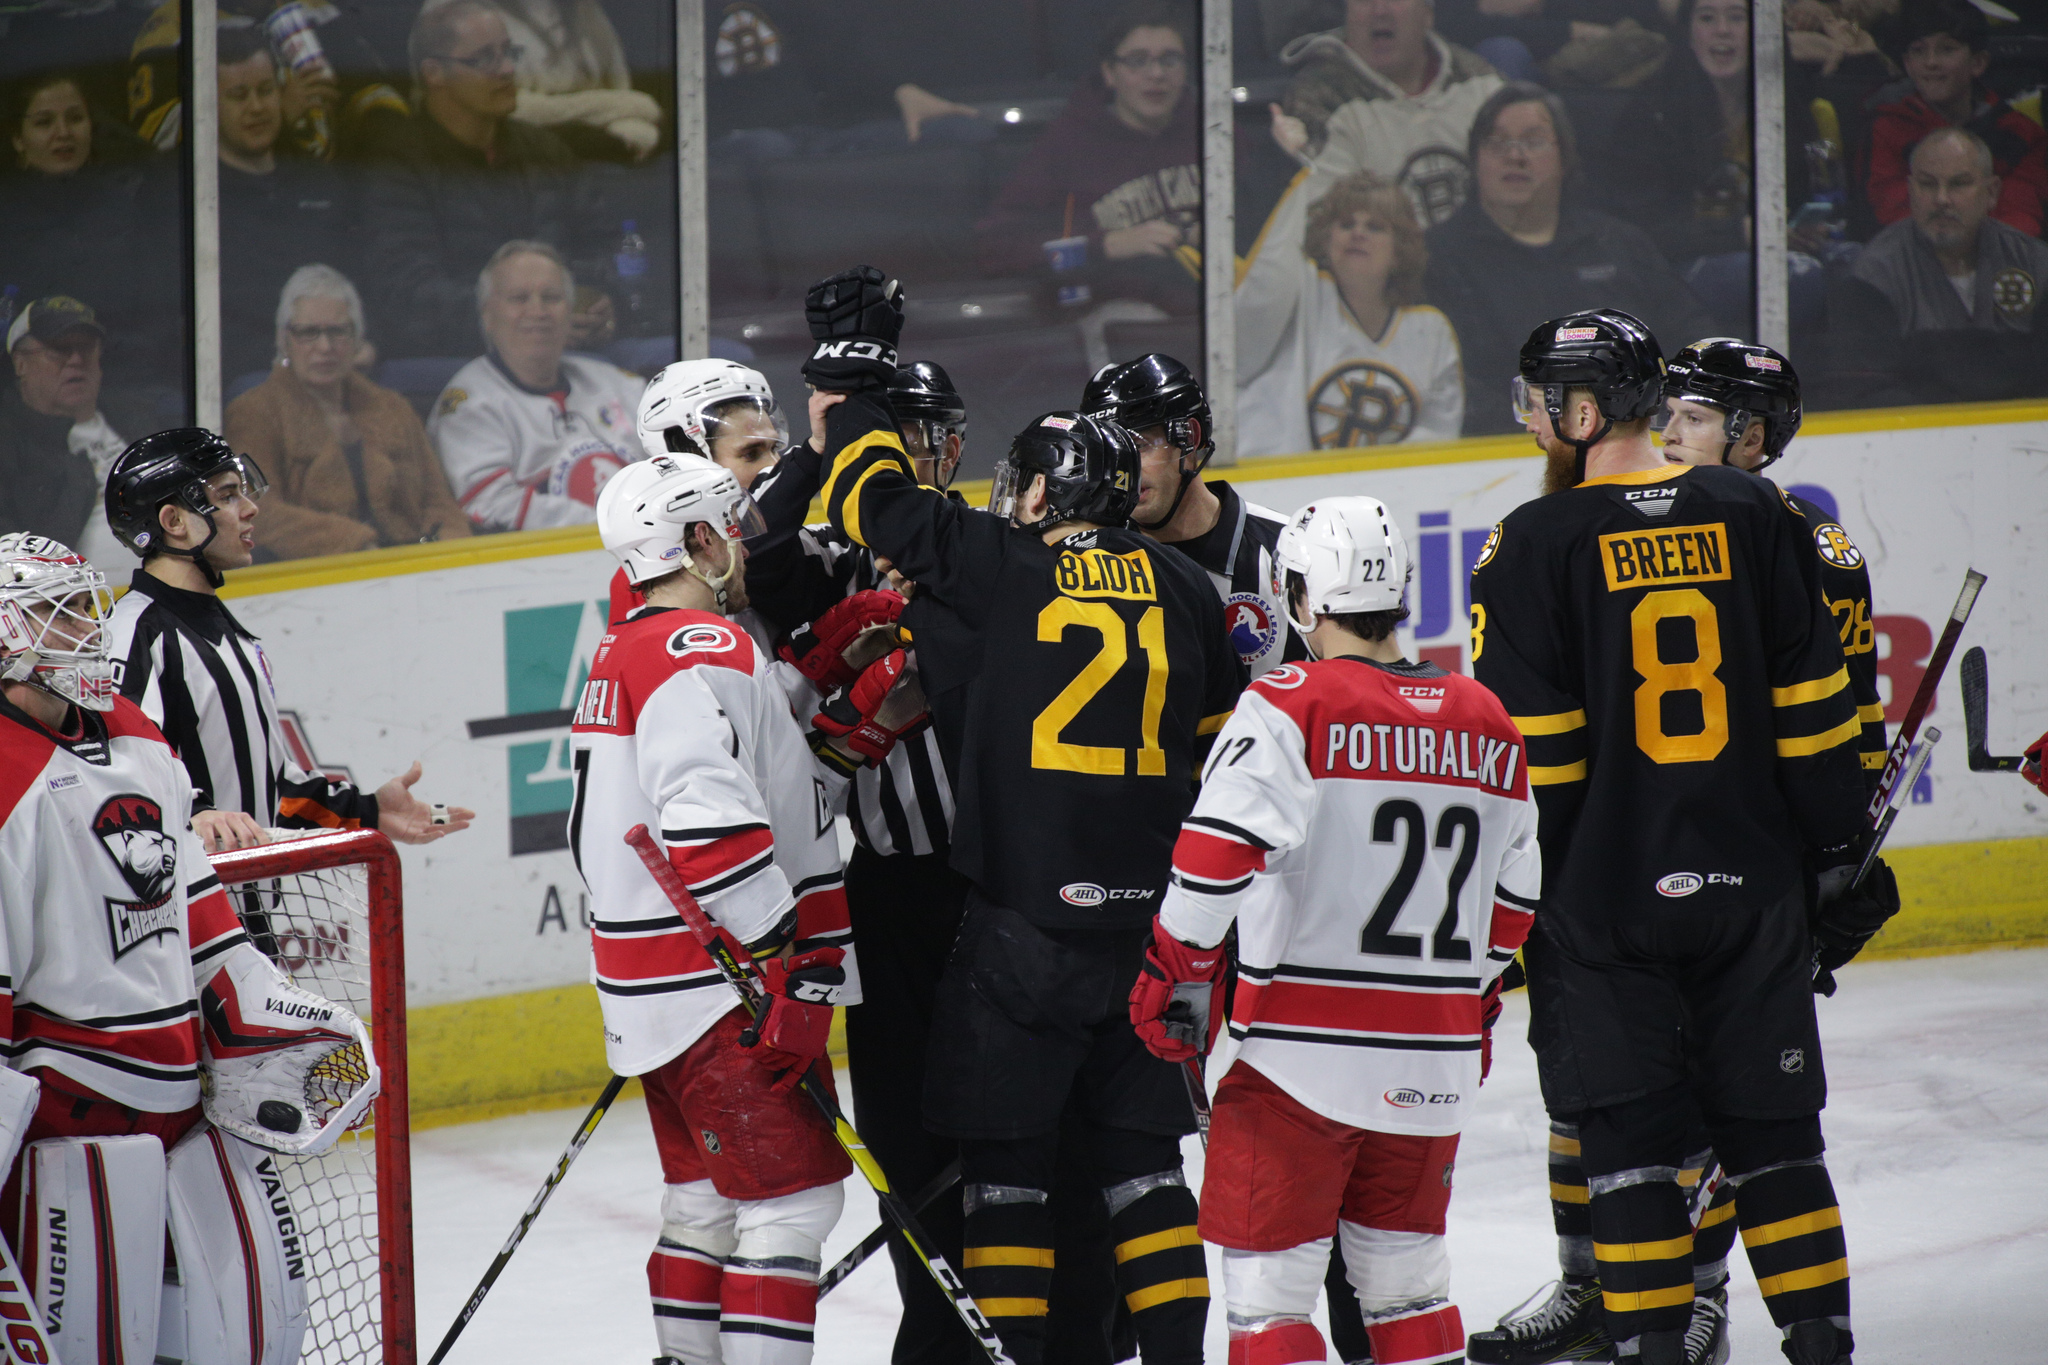 474f8d5e2 Providence Bruins Weekend Recap 2 15 - 2 17 - Stanley Cup of Chowder